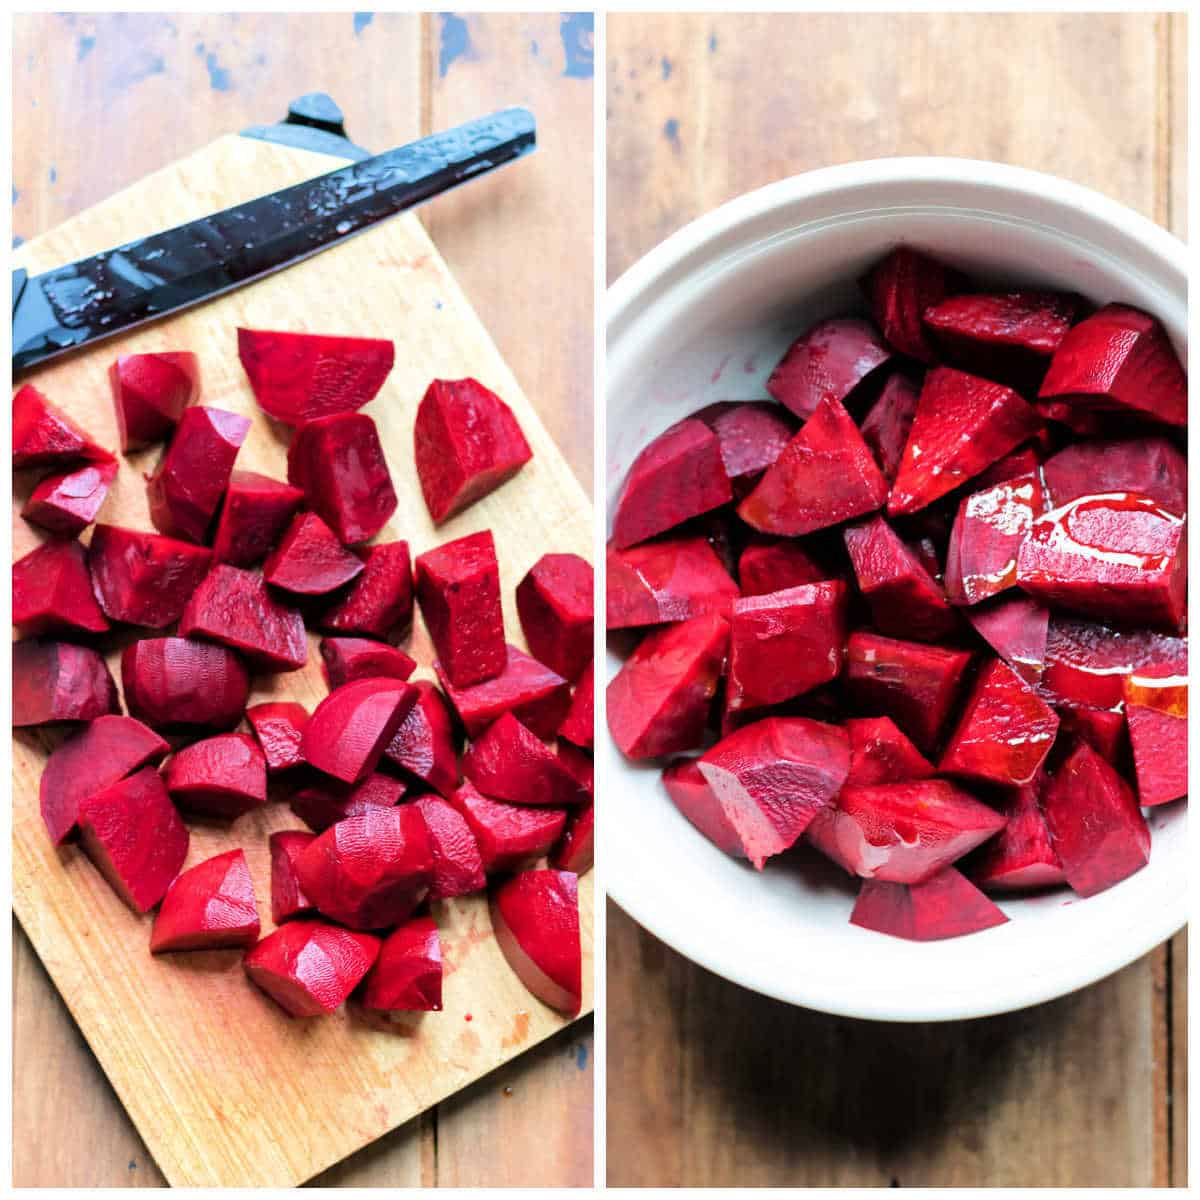 Collage: 1 cutting beets, 2 in a bowl with oil.